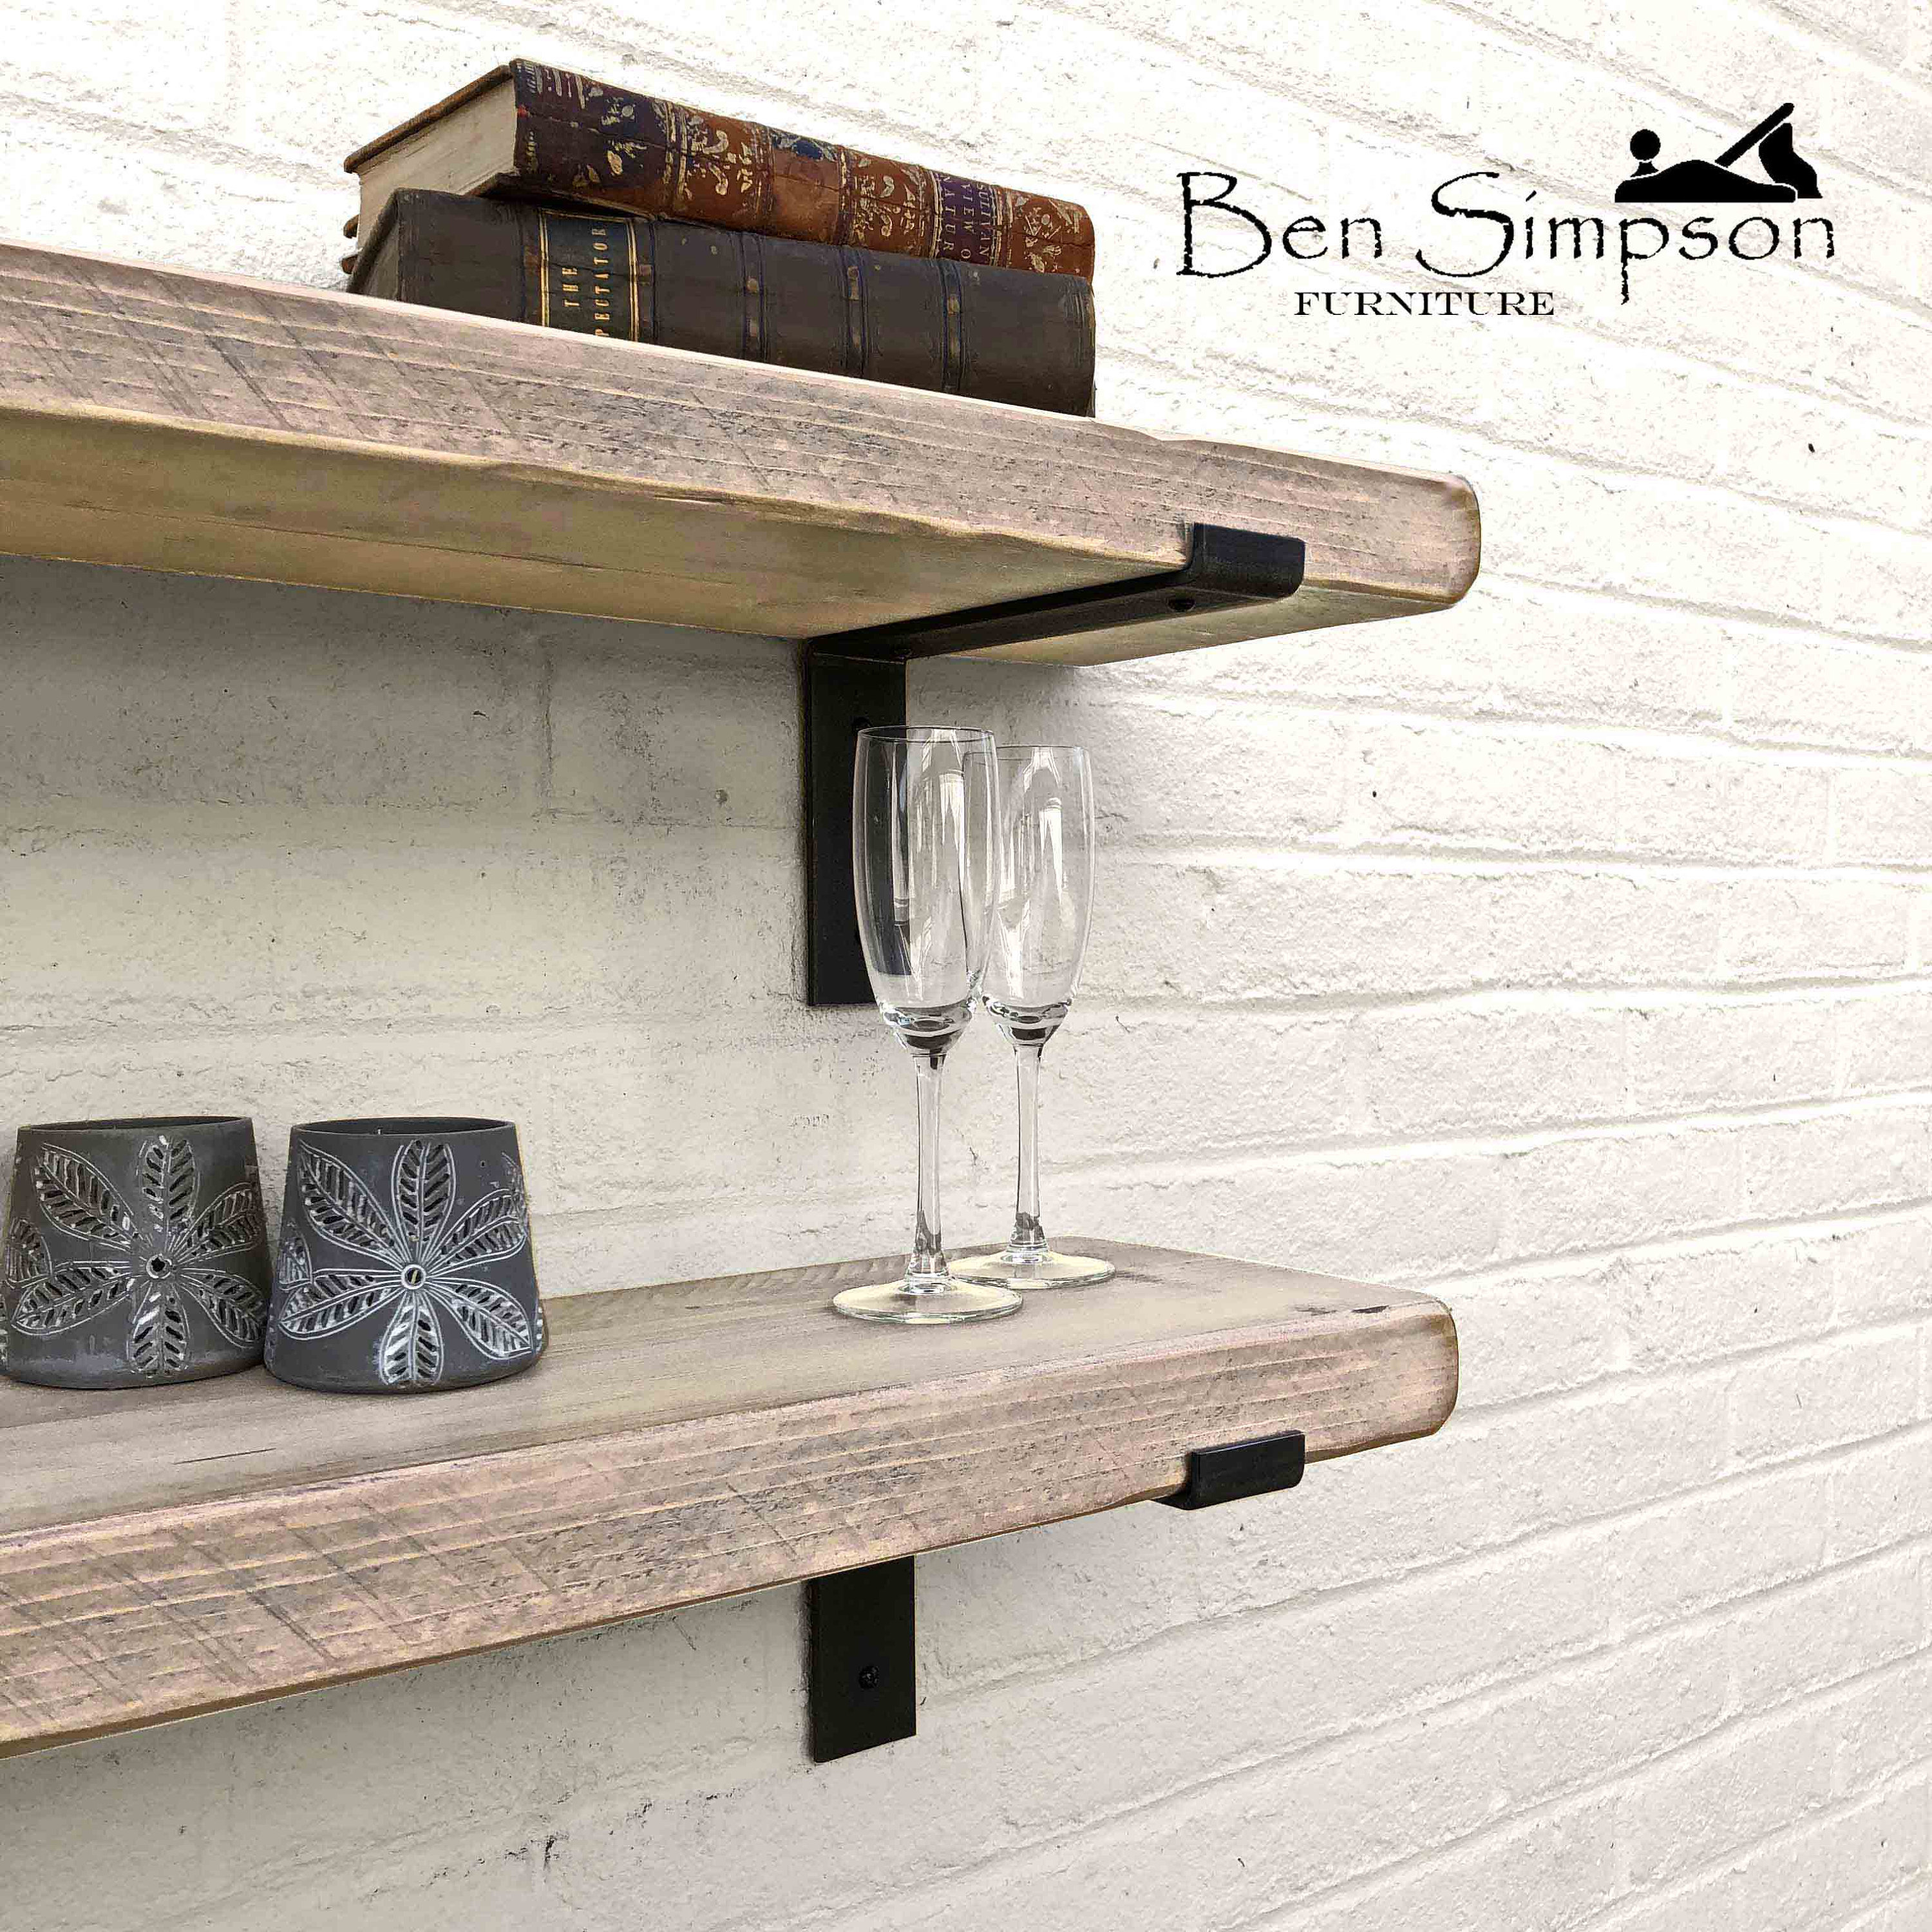 Rustic Shelves Handcrafted With Industrial Metal Shelf Brackets In A Shabby  Chic Finish | 5cm Thickness | Ben Simpson Furniture